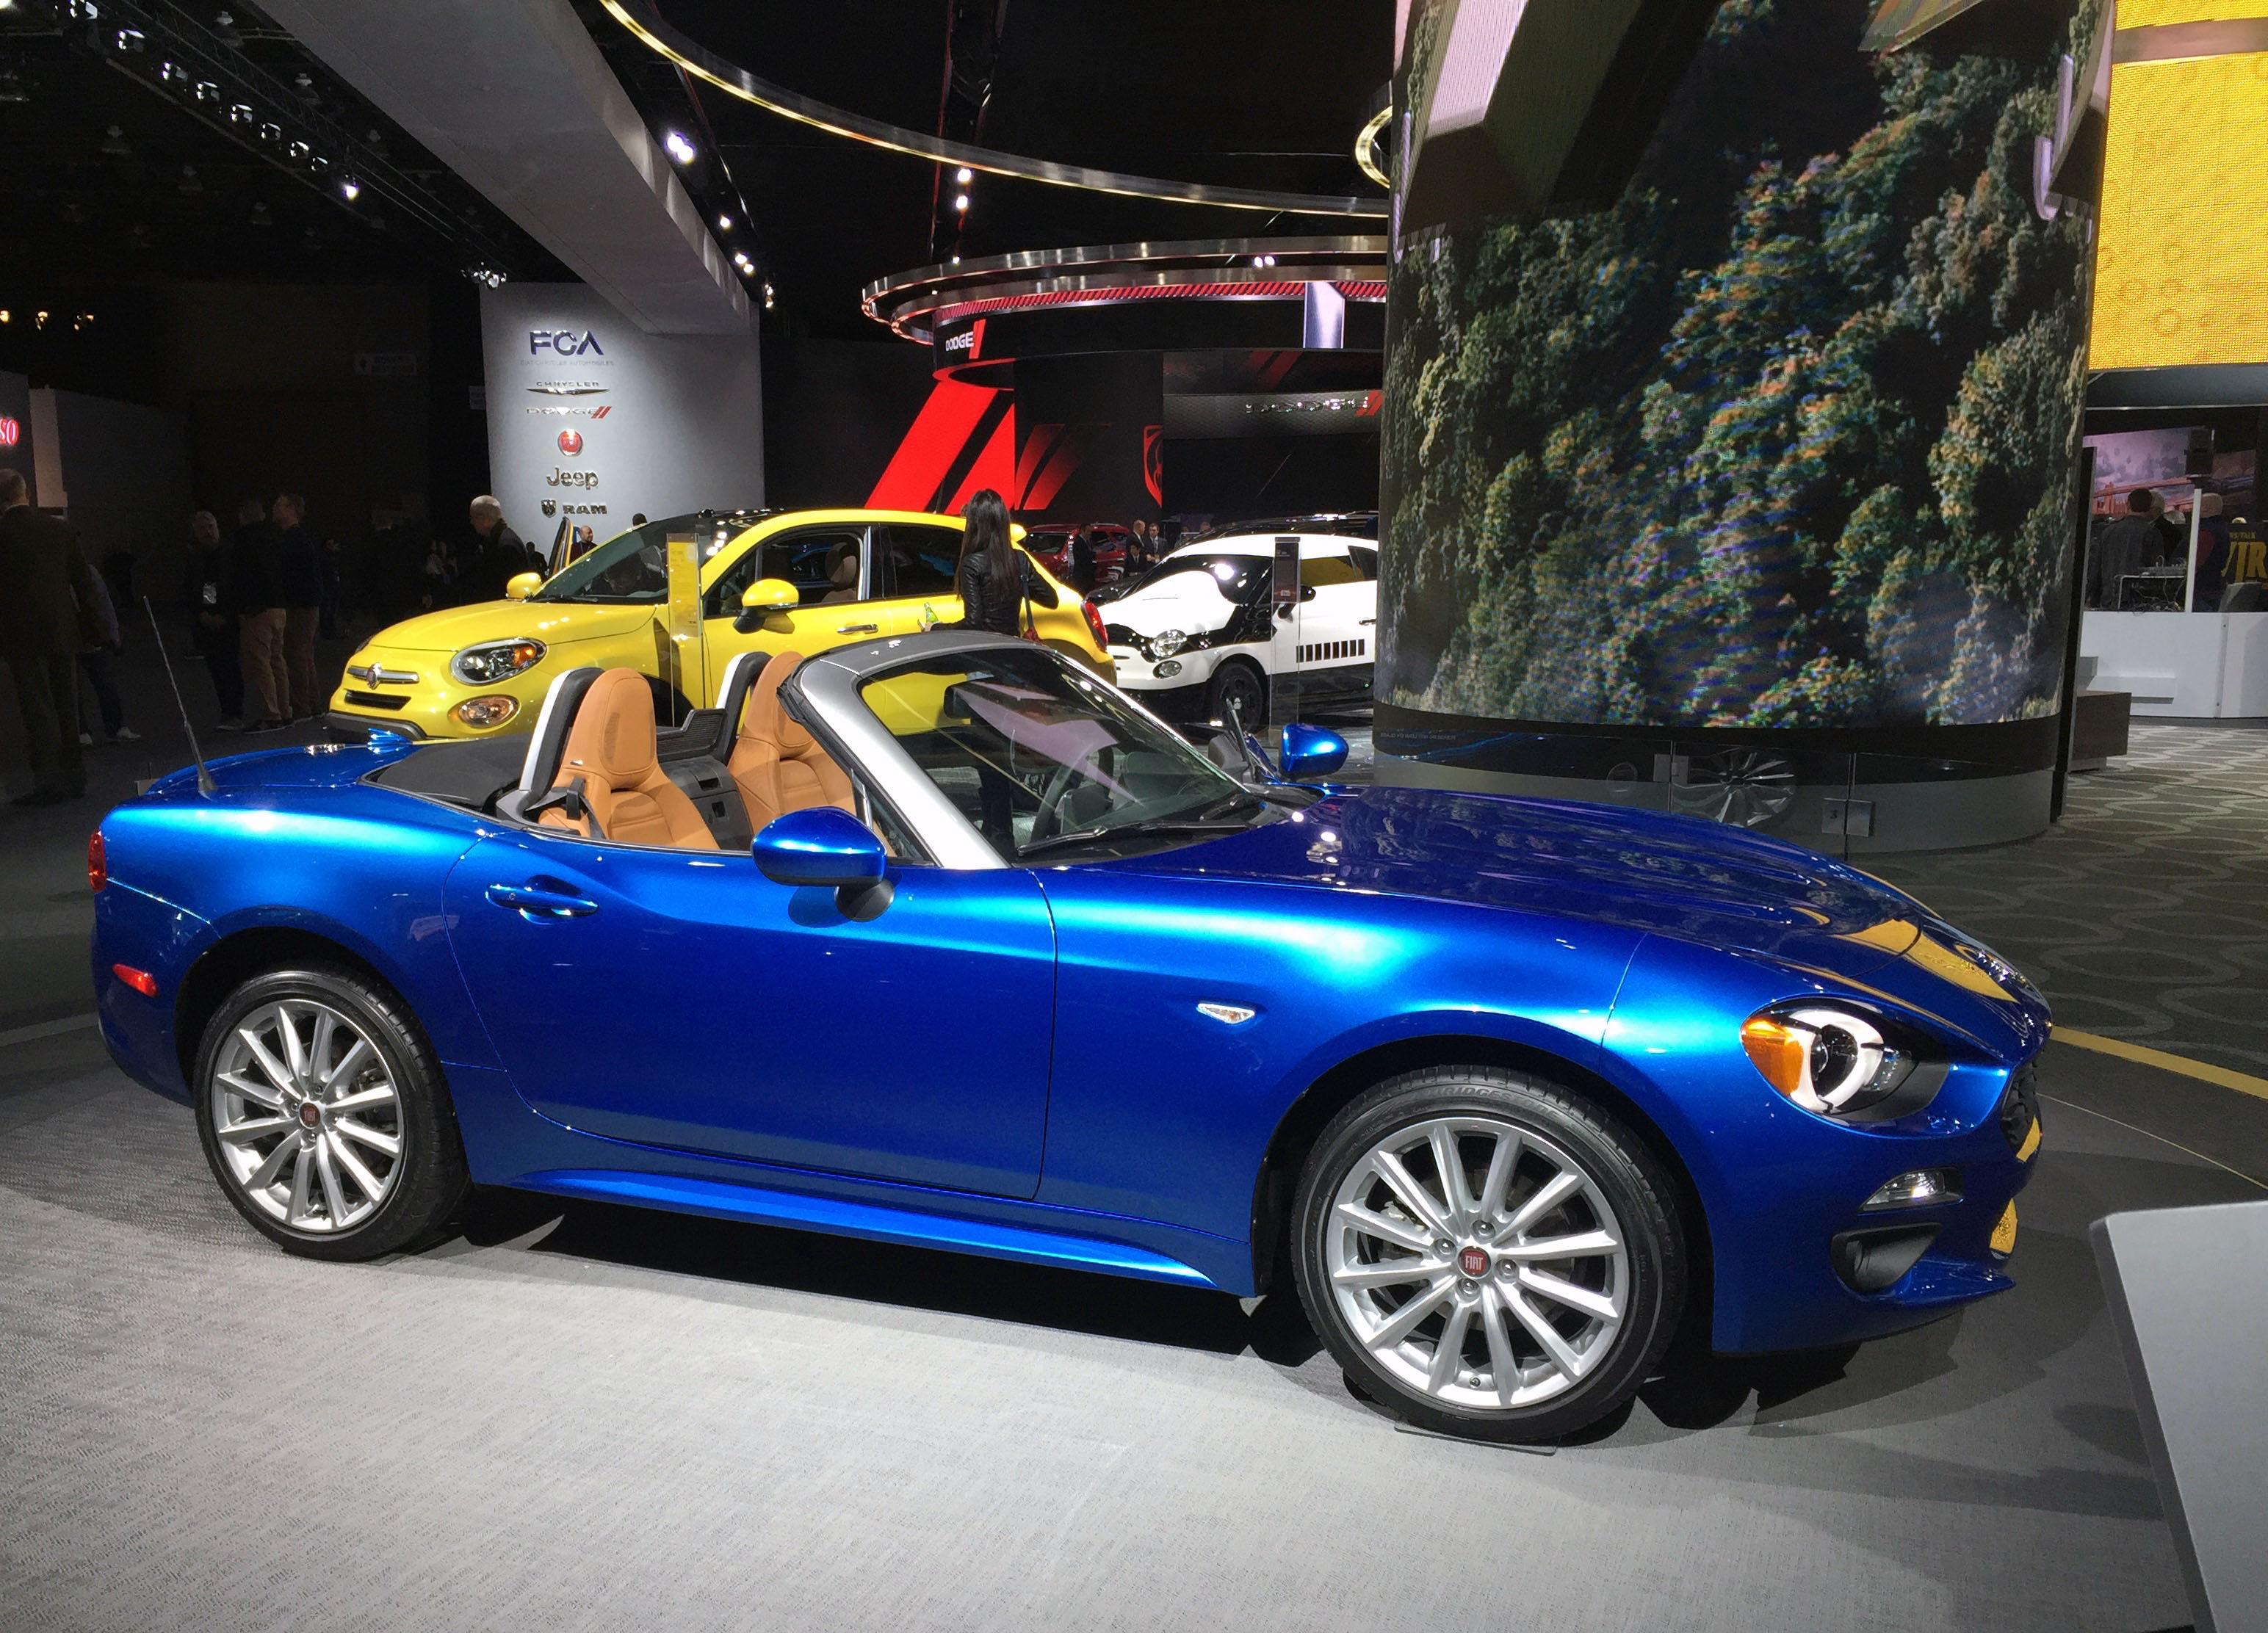 2017 Fiat 124 Spider (Photo by Jill Ciminillo)